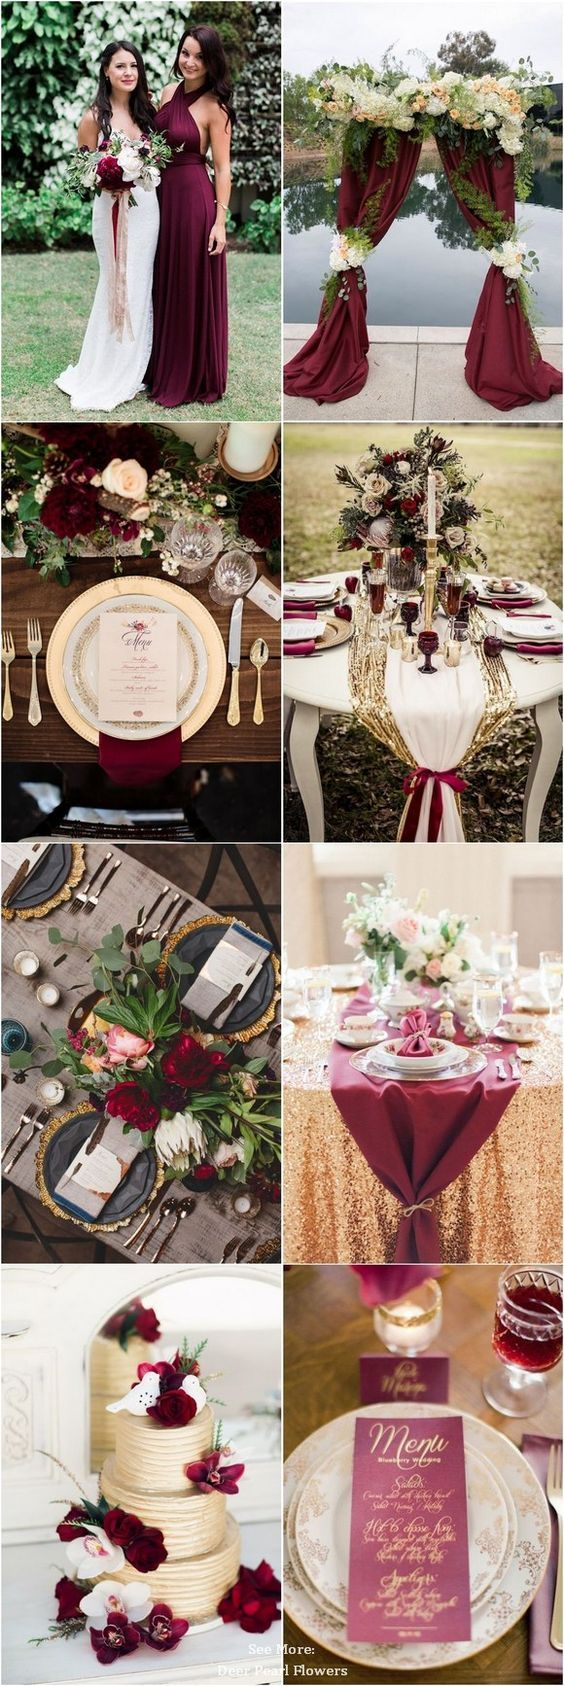 Photo of 30 Elegant Fall Burgundy and Gold Wedding Ideas – #Burgundy #Elegant #Fall #Gold…